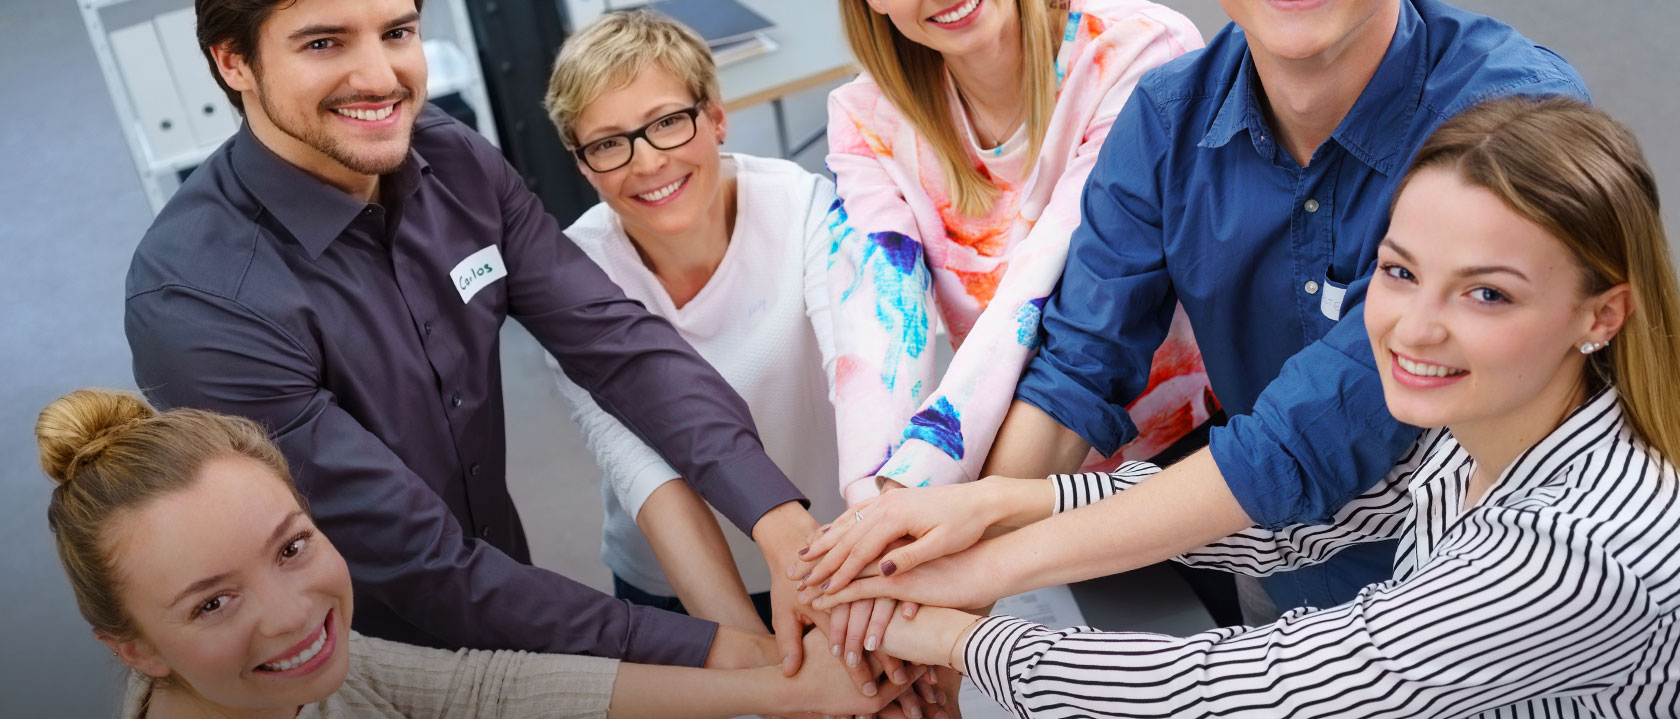 Group of people coming together in professional environment